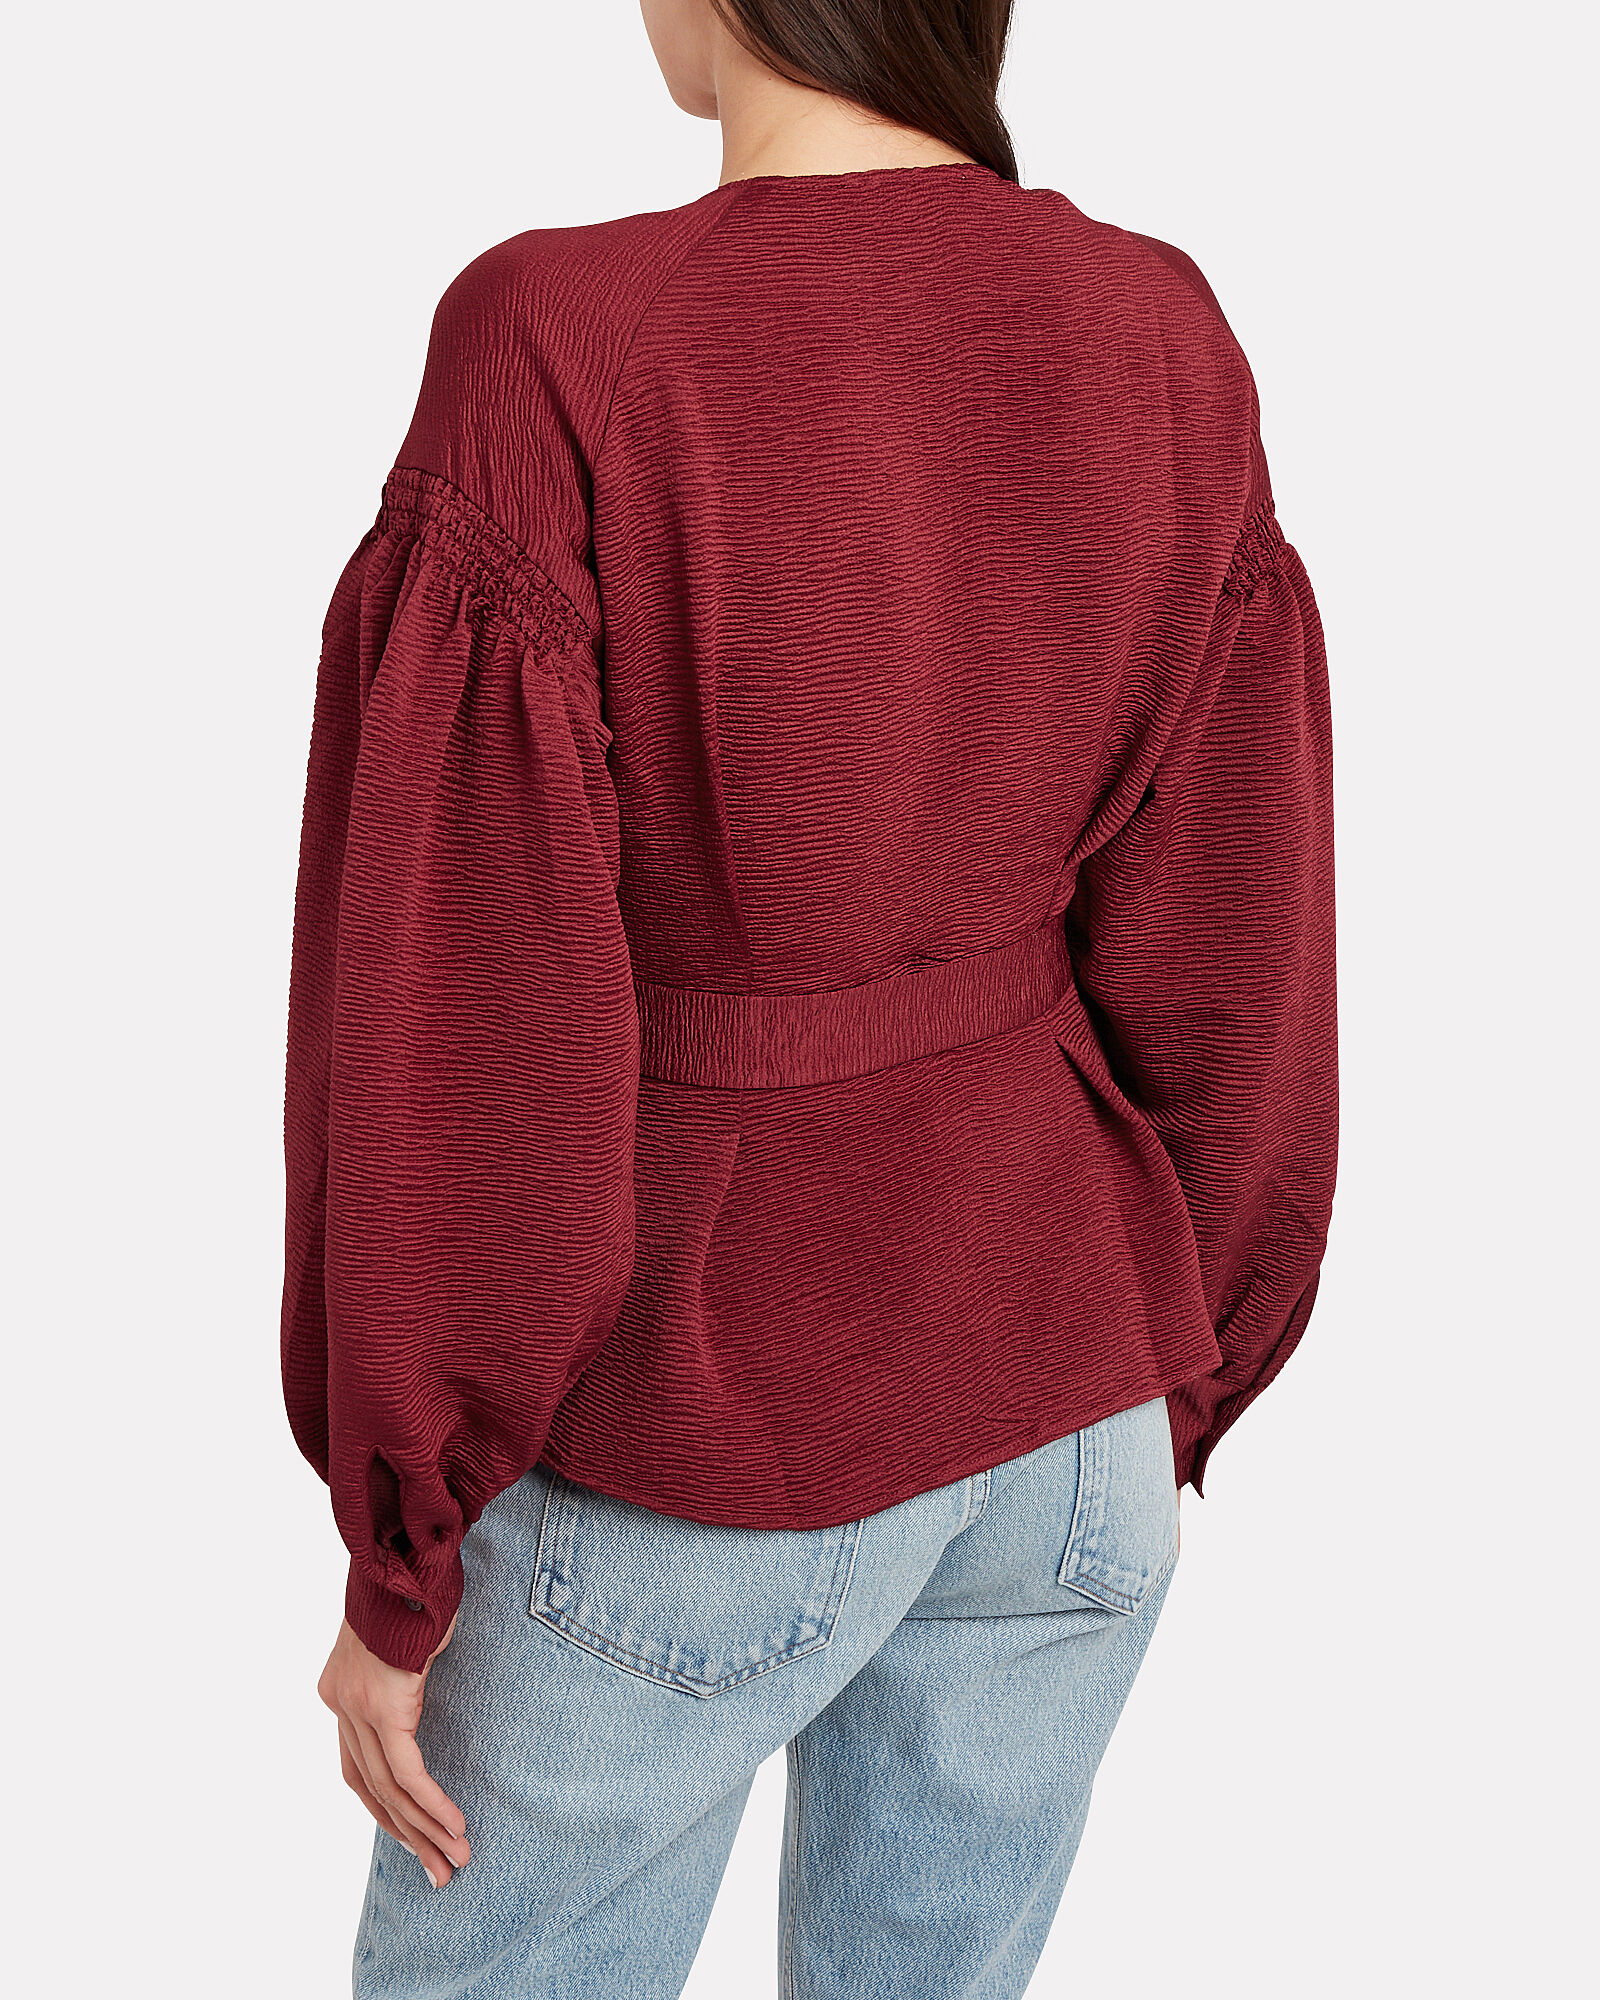 Merrill Satin Wrap Blouse, MERLOT, hi-res